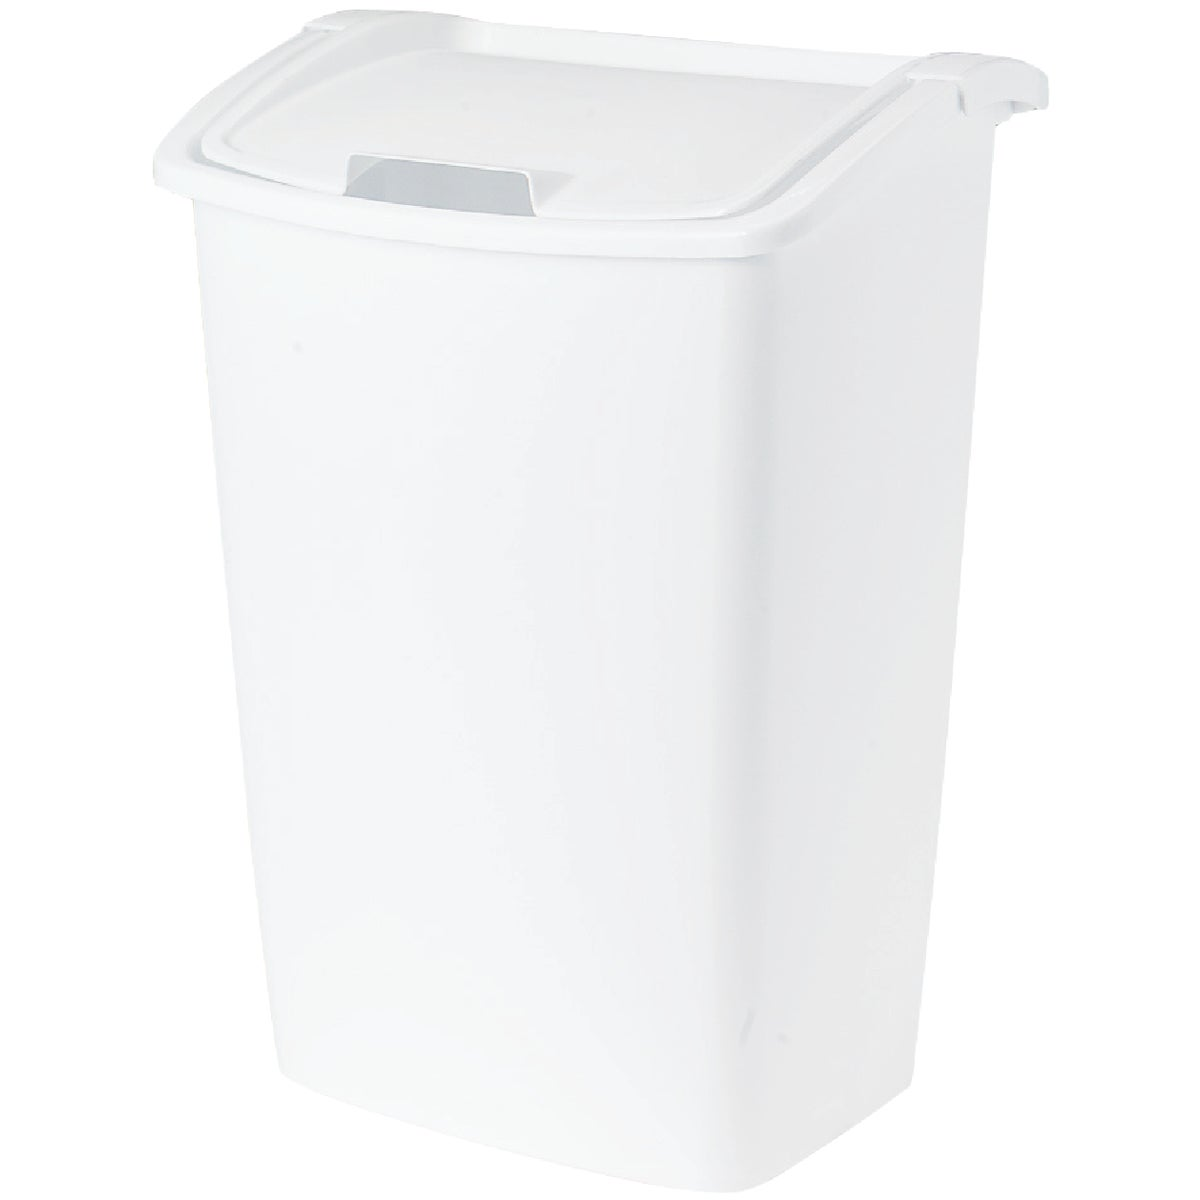 42QT WHITE WASTEBASKET - 280300-WHT by Rubbermaid Home